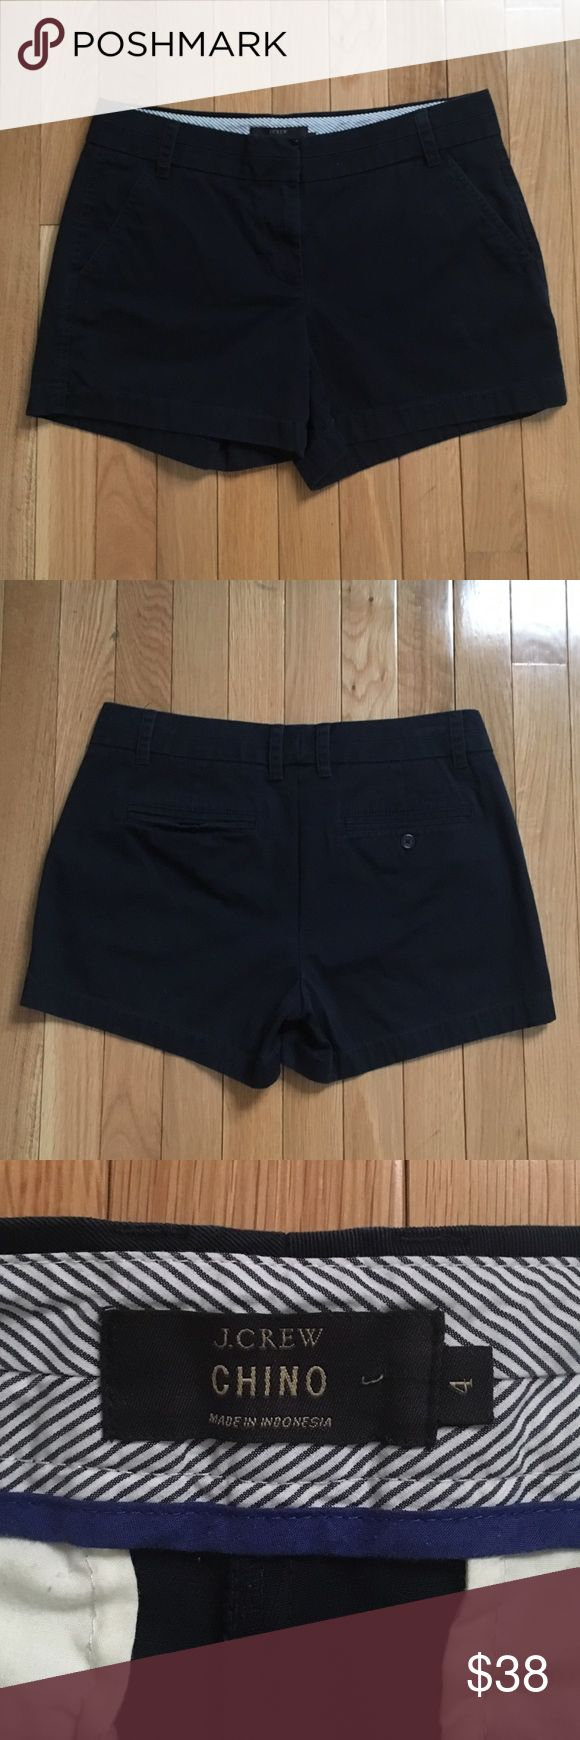 "JCrew 4"" Chino Shorts in Navy Worn but in great condition. Great versatile navy blue color. Sorry no trades, only looking to sell. J. Crew Shorts"